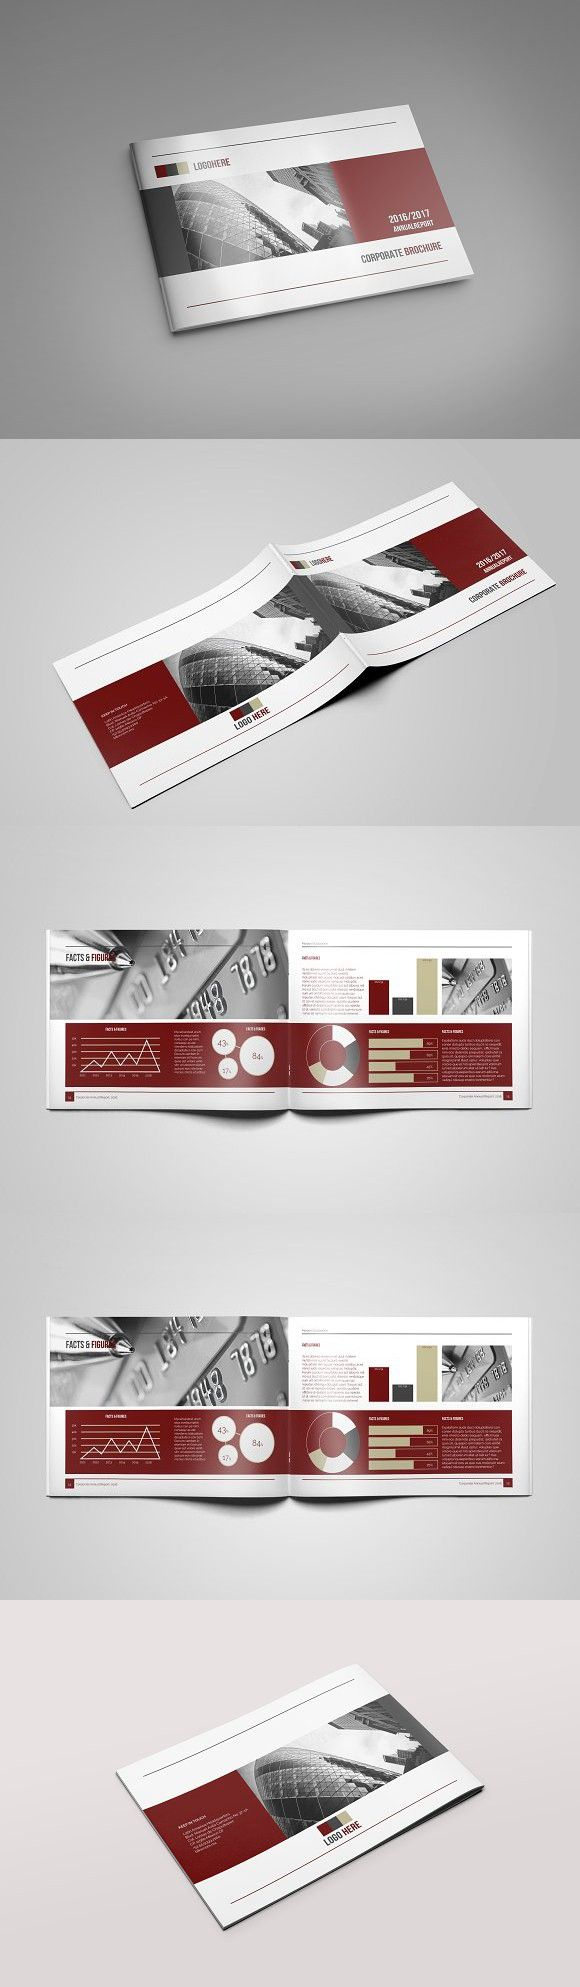 Annual Report A4 Landscape. Infographic Templates. $22.00